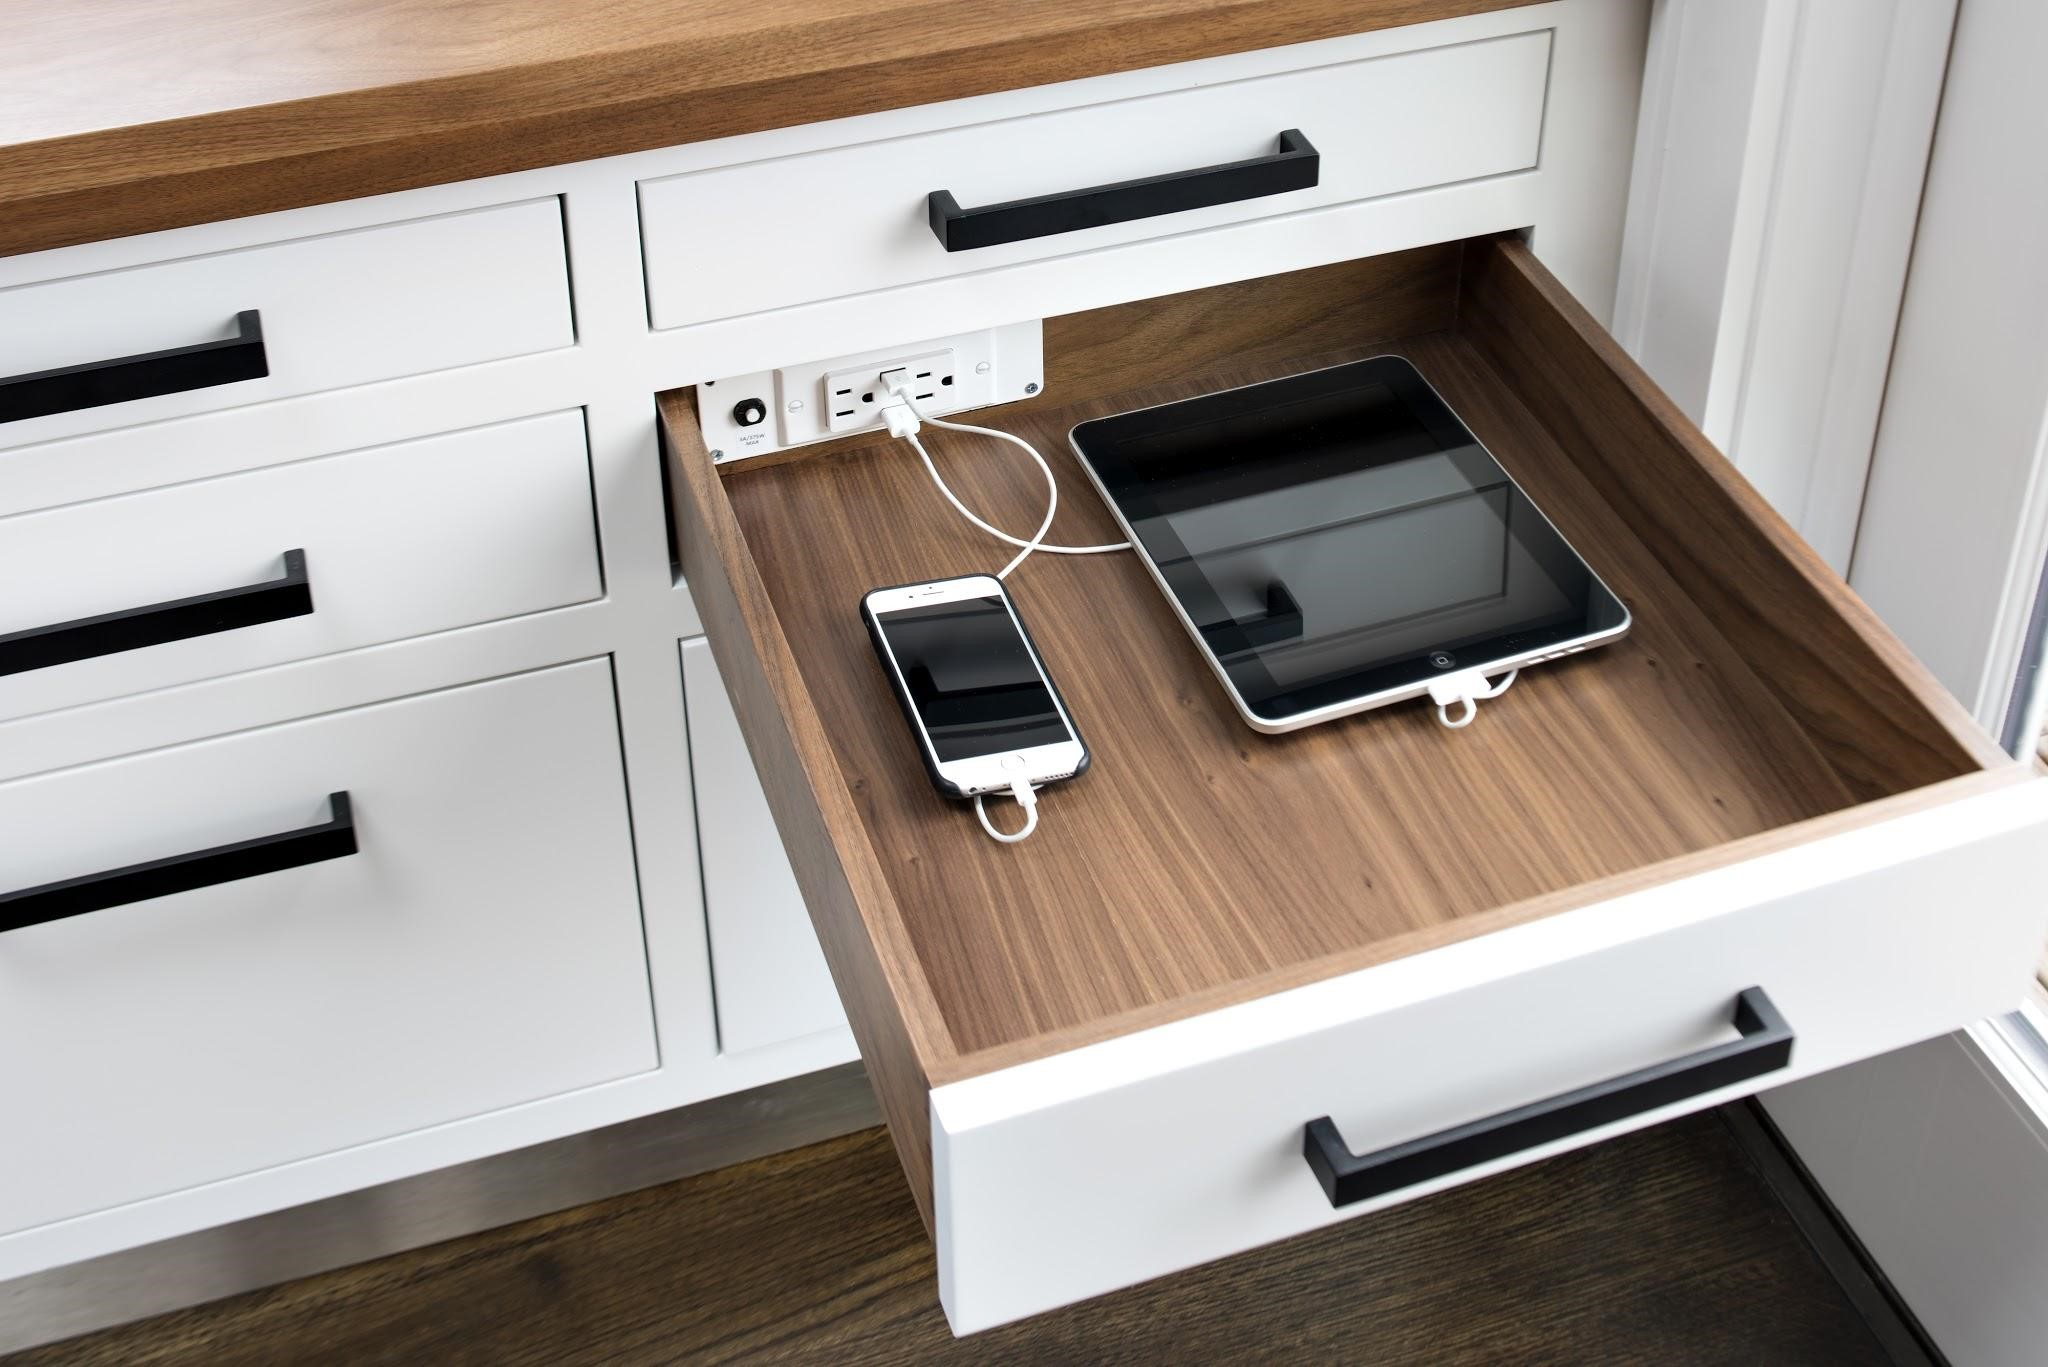 Cool Wall Receptacle The 5 Smartest Solutions Your Cabinets Need Now